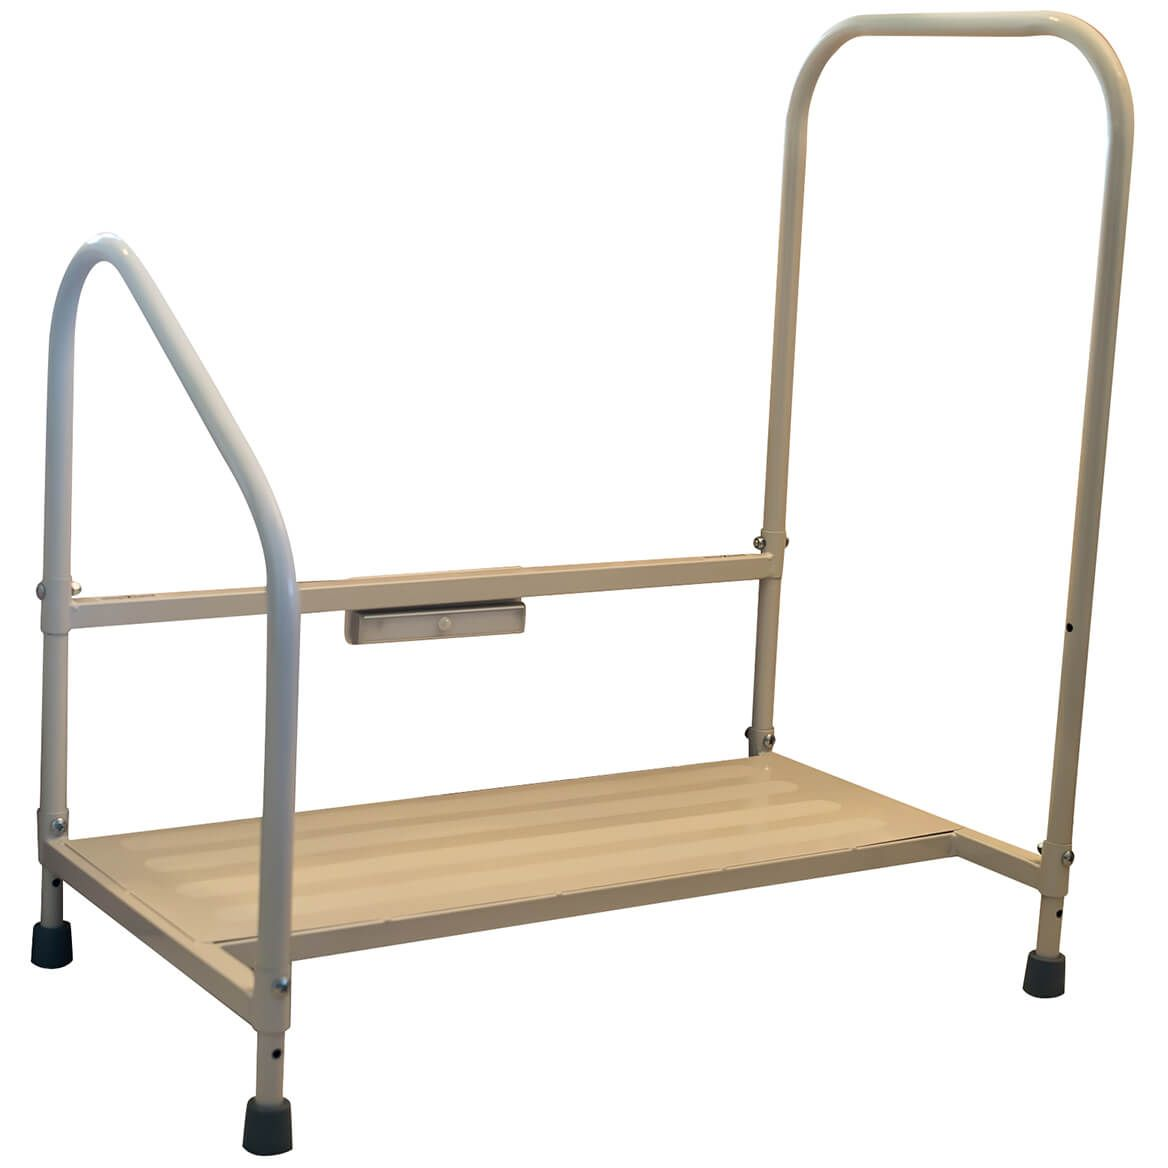 Step2Bed™ Adjustable Height Bed Step Stool with LED Light-370598